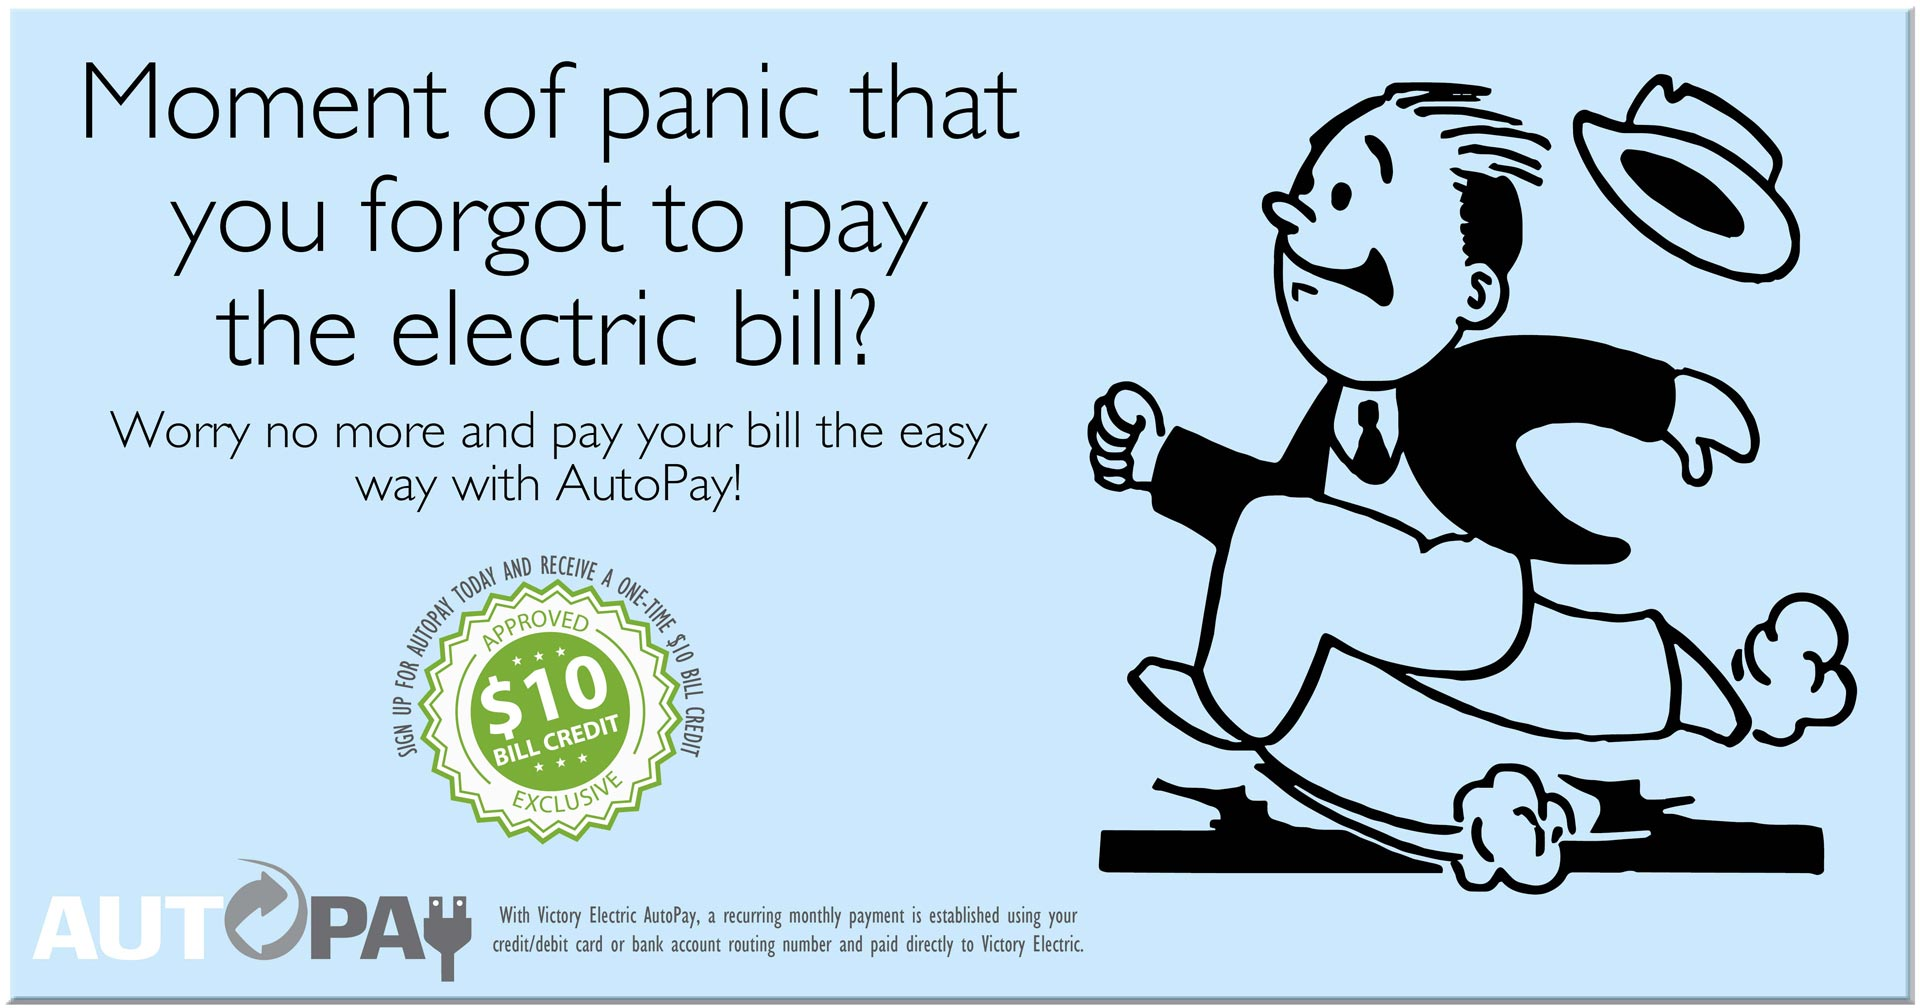 https://victoryelectric.net/sites/victoryelectric/files/revslider/image/Panic-AutoPay-Meme-resize.jpg